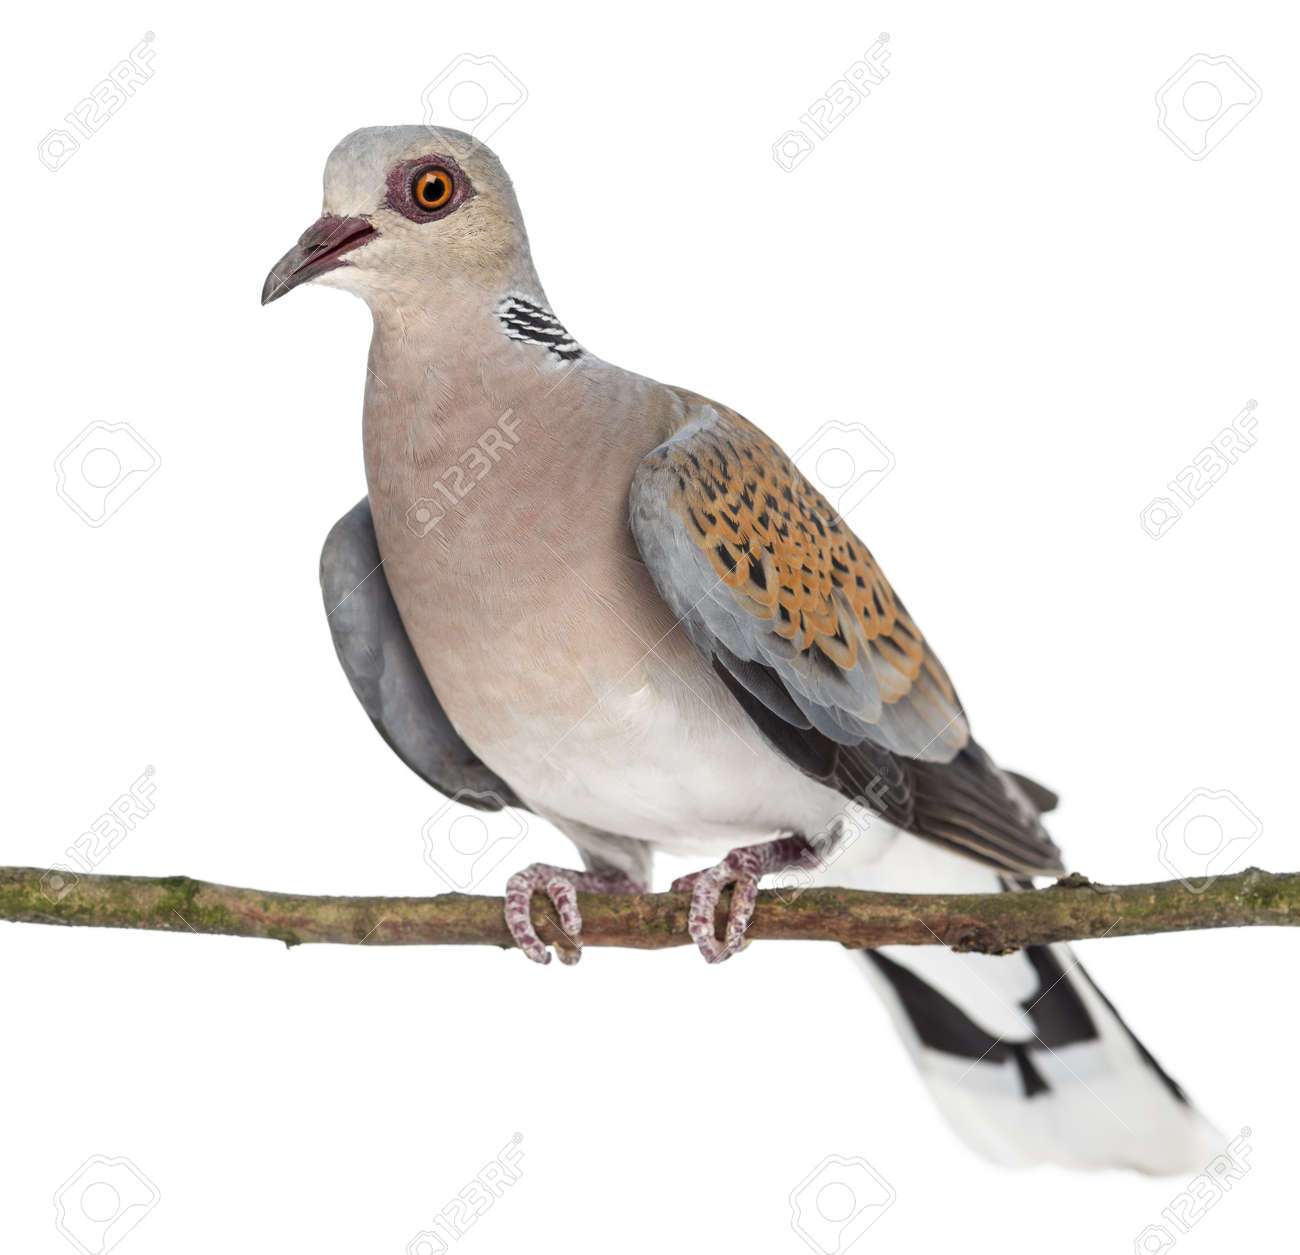 European Turtle Dove perched on branch, Streptopelia turtur, also known as the Turtle Dove against white background Stock Photo - 15344998